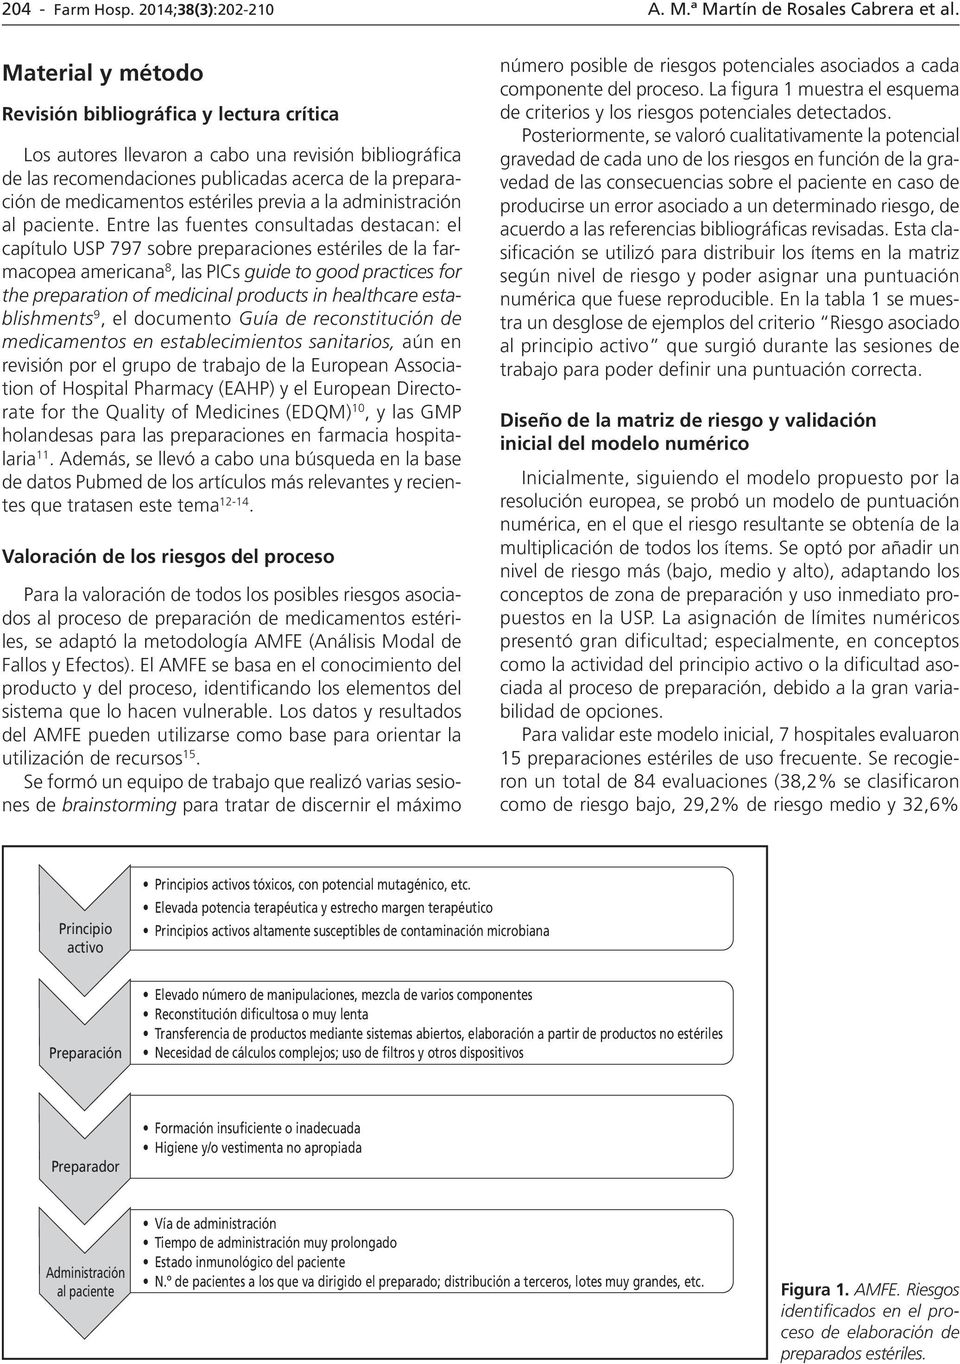 estériles de la farmacopea americana 8, las PIs guide to good practices for the preparation of medicinal products in healthcare establishments 9, el documento Guía de reconstitución de medicamentos